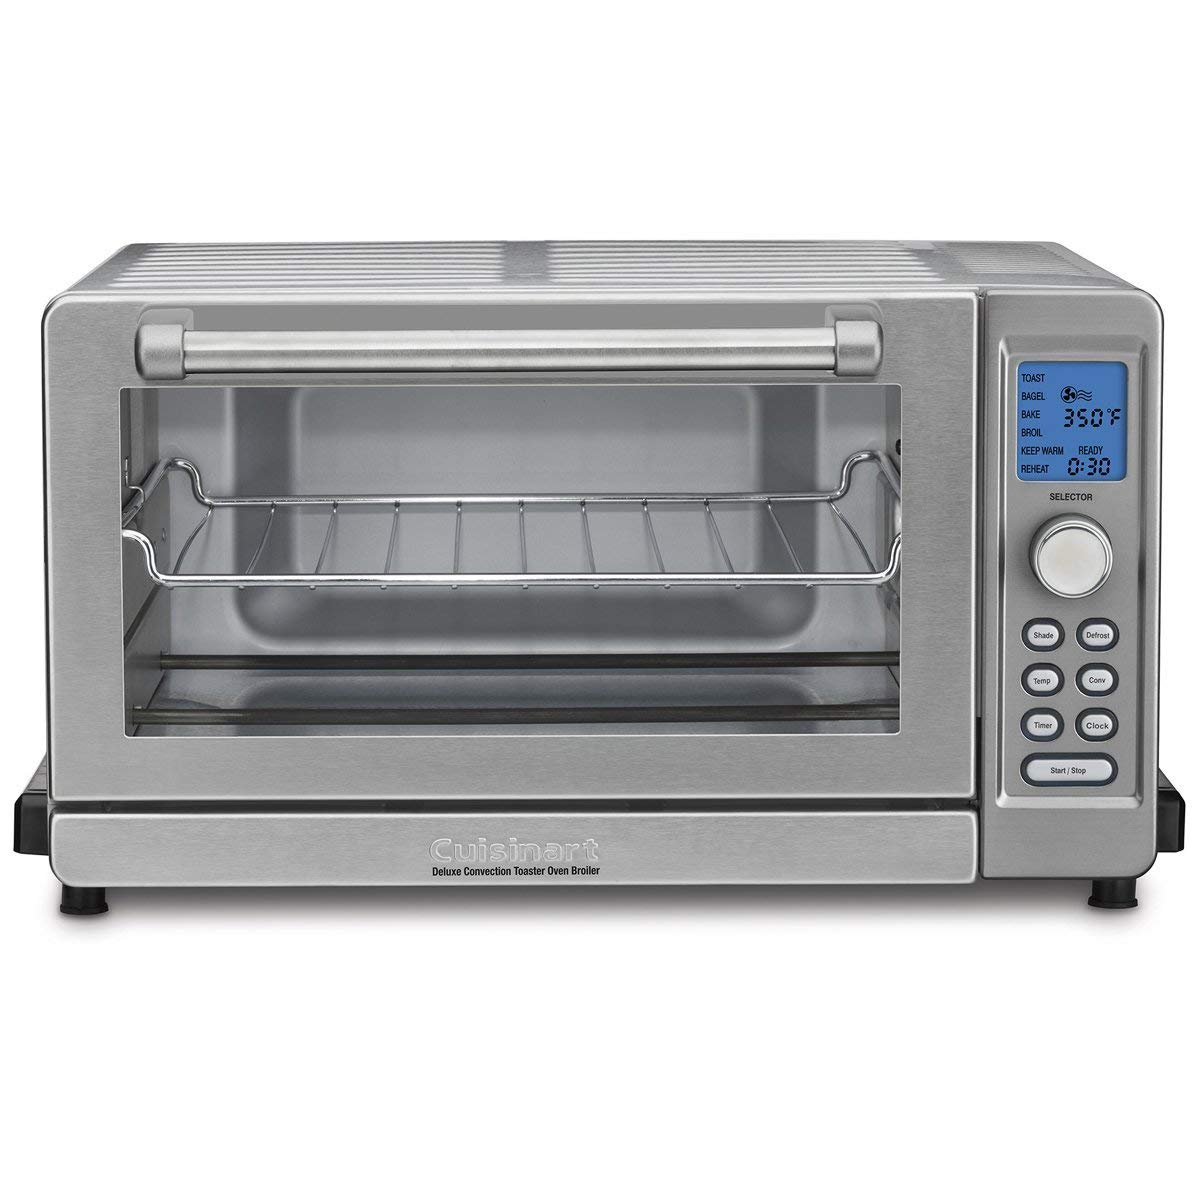 Cuisinart TOB-135 Deluxe Convection Toaster Oven Broiler, Brushed Stainless - Refurbished w/Extended Warranty